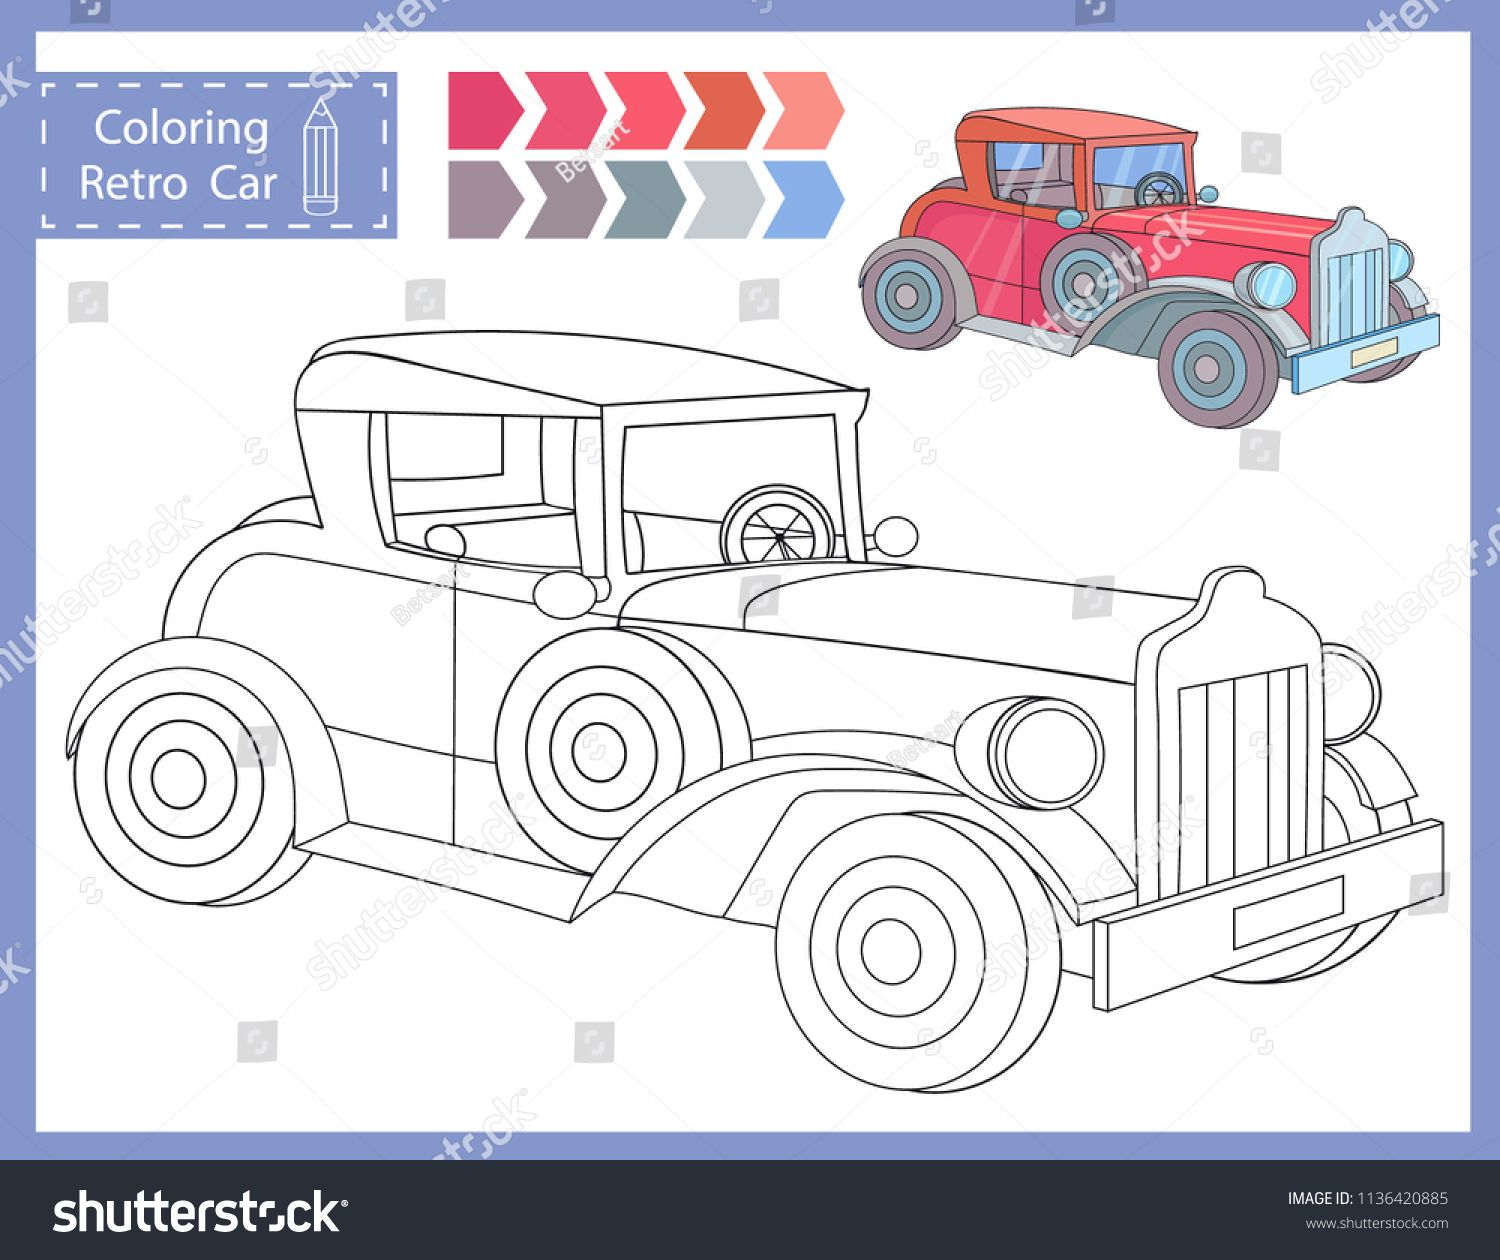 Coloring Worksheets With Drawn Of Retro Car Children